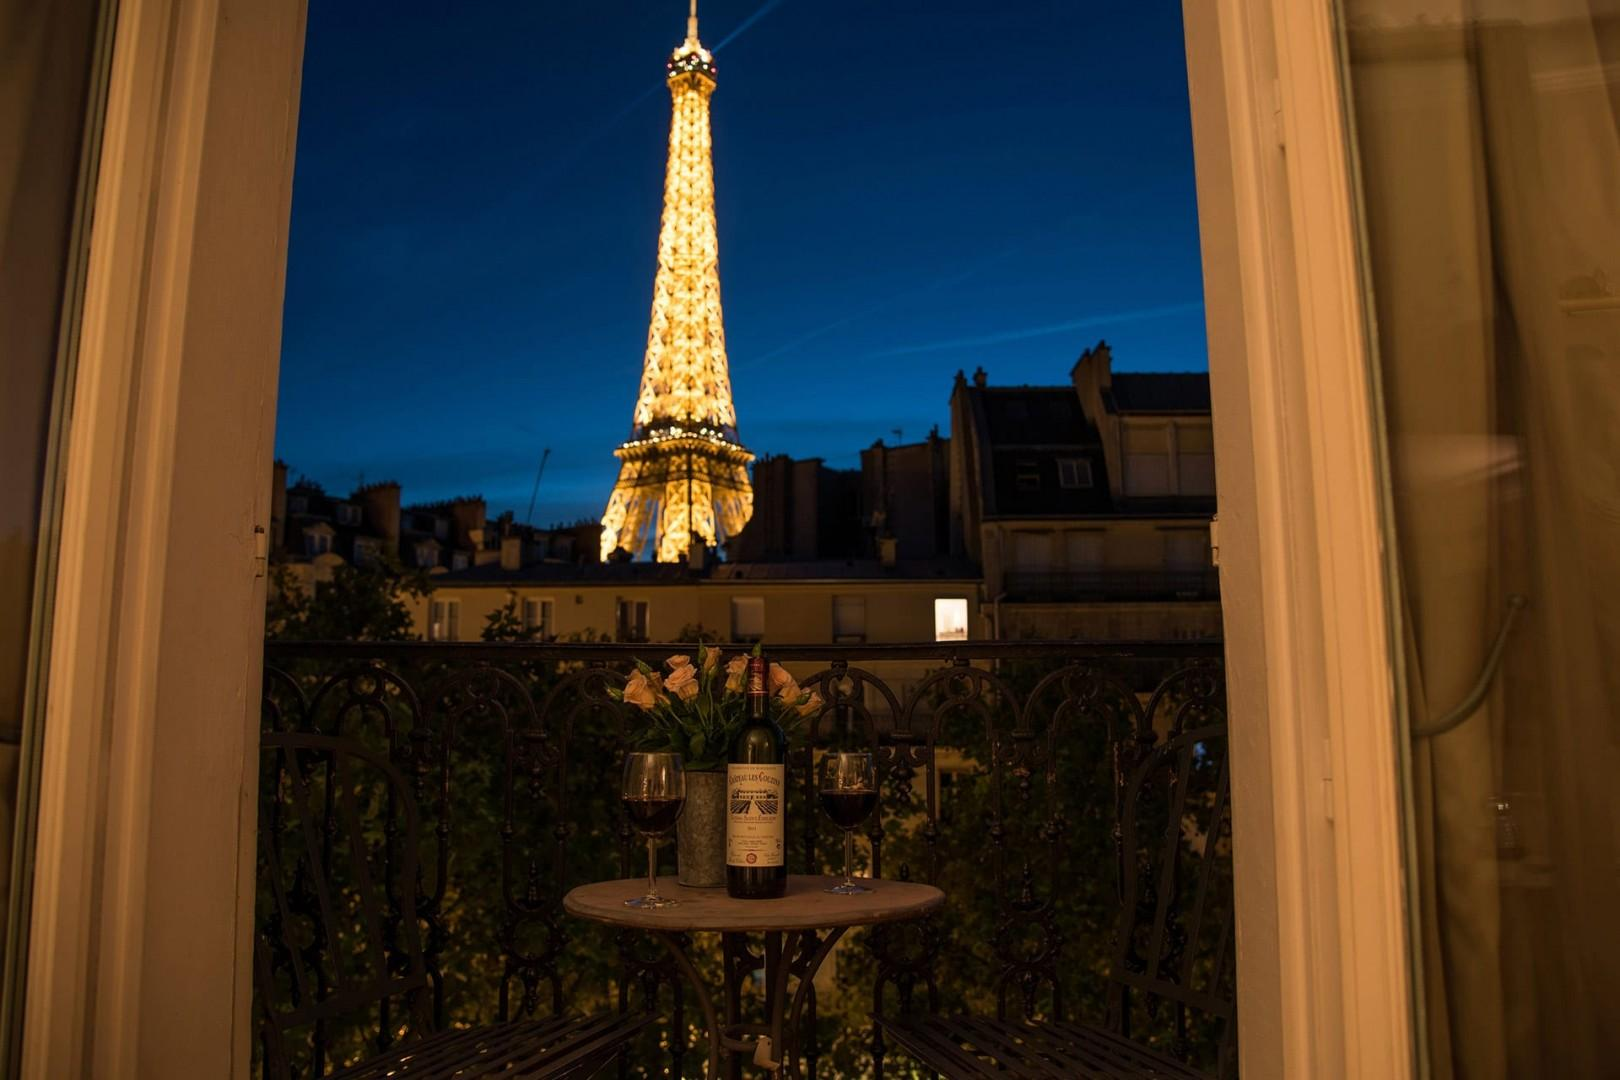 Welcome to the Cabernet, where you will enjoy stunning views of the Eiffel Tower!